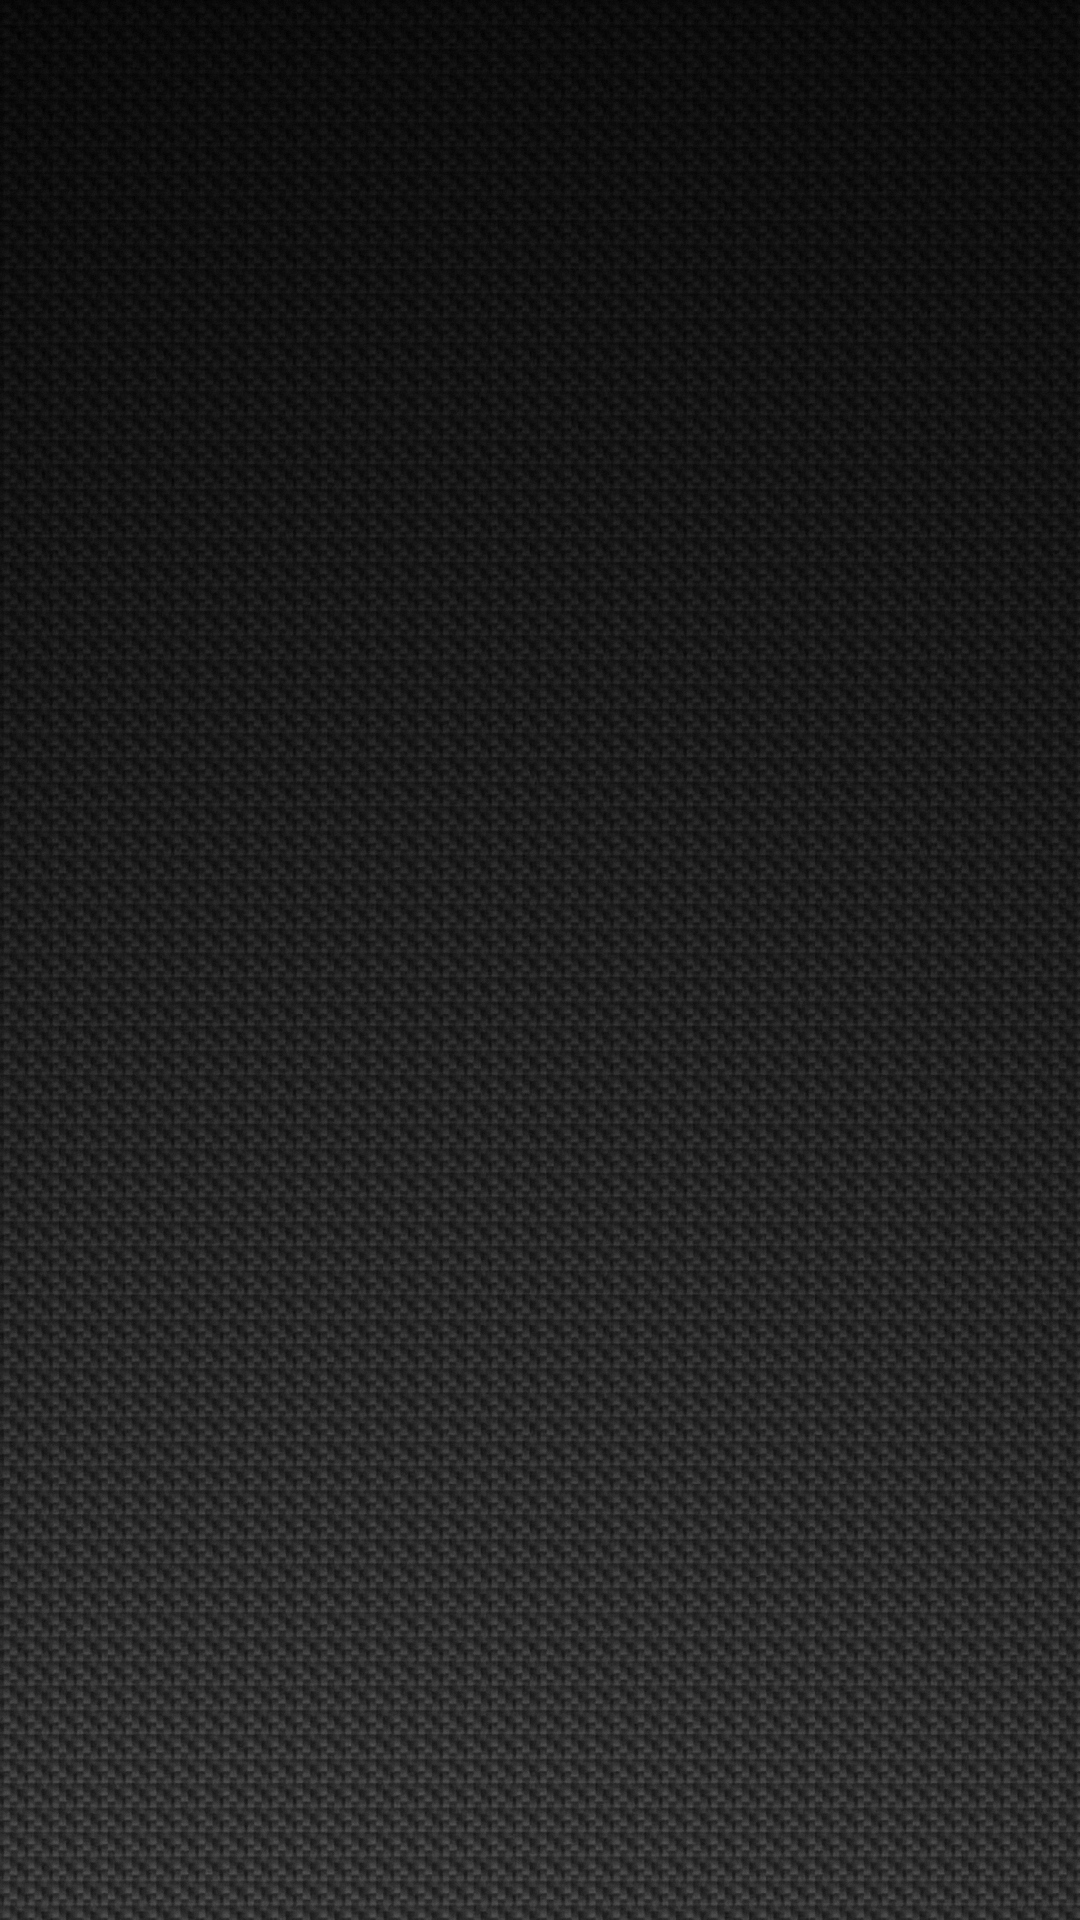 HD 1080x1920 carbon fiber motorola moto wallpapers 1080x1920